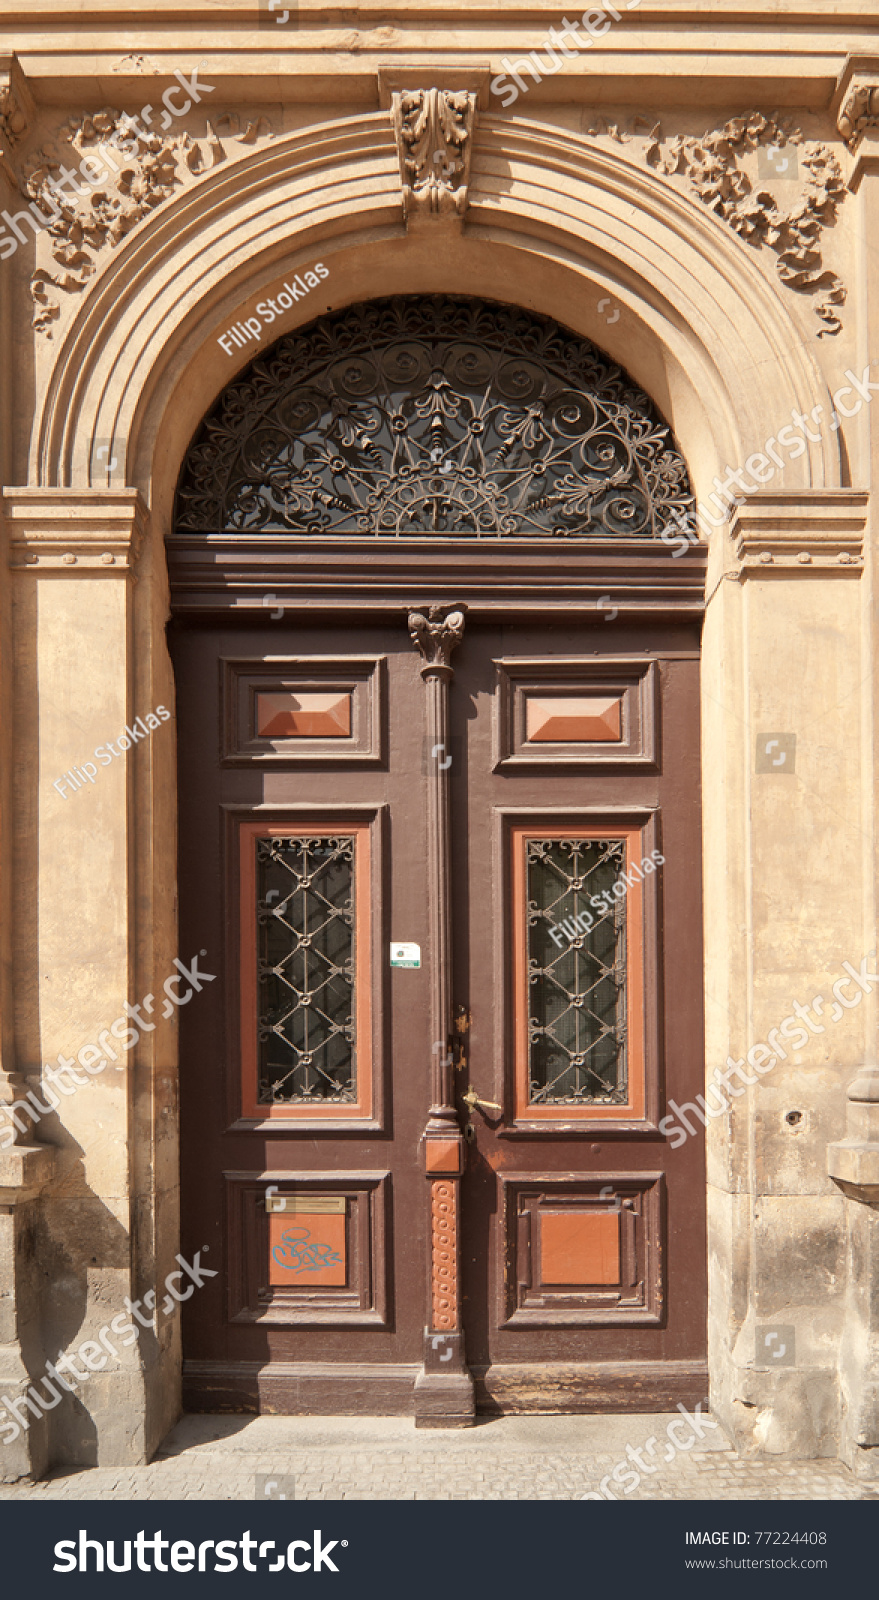 Historical ornate wooden door in a stone entry prague for Door z prague